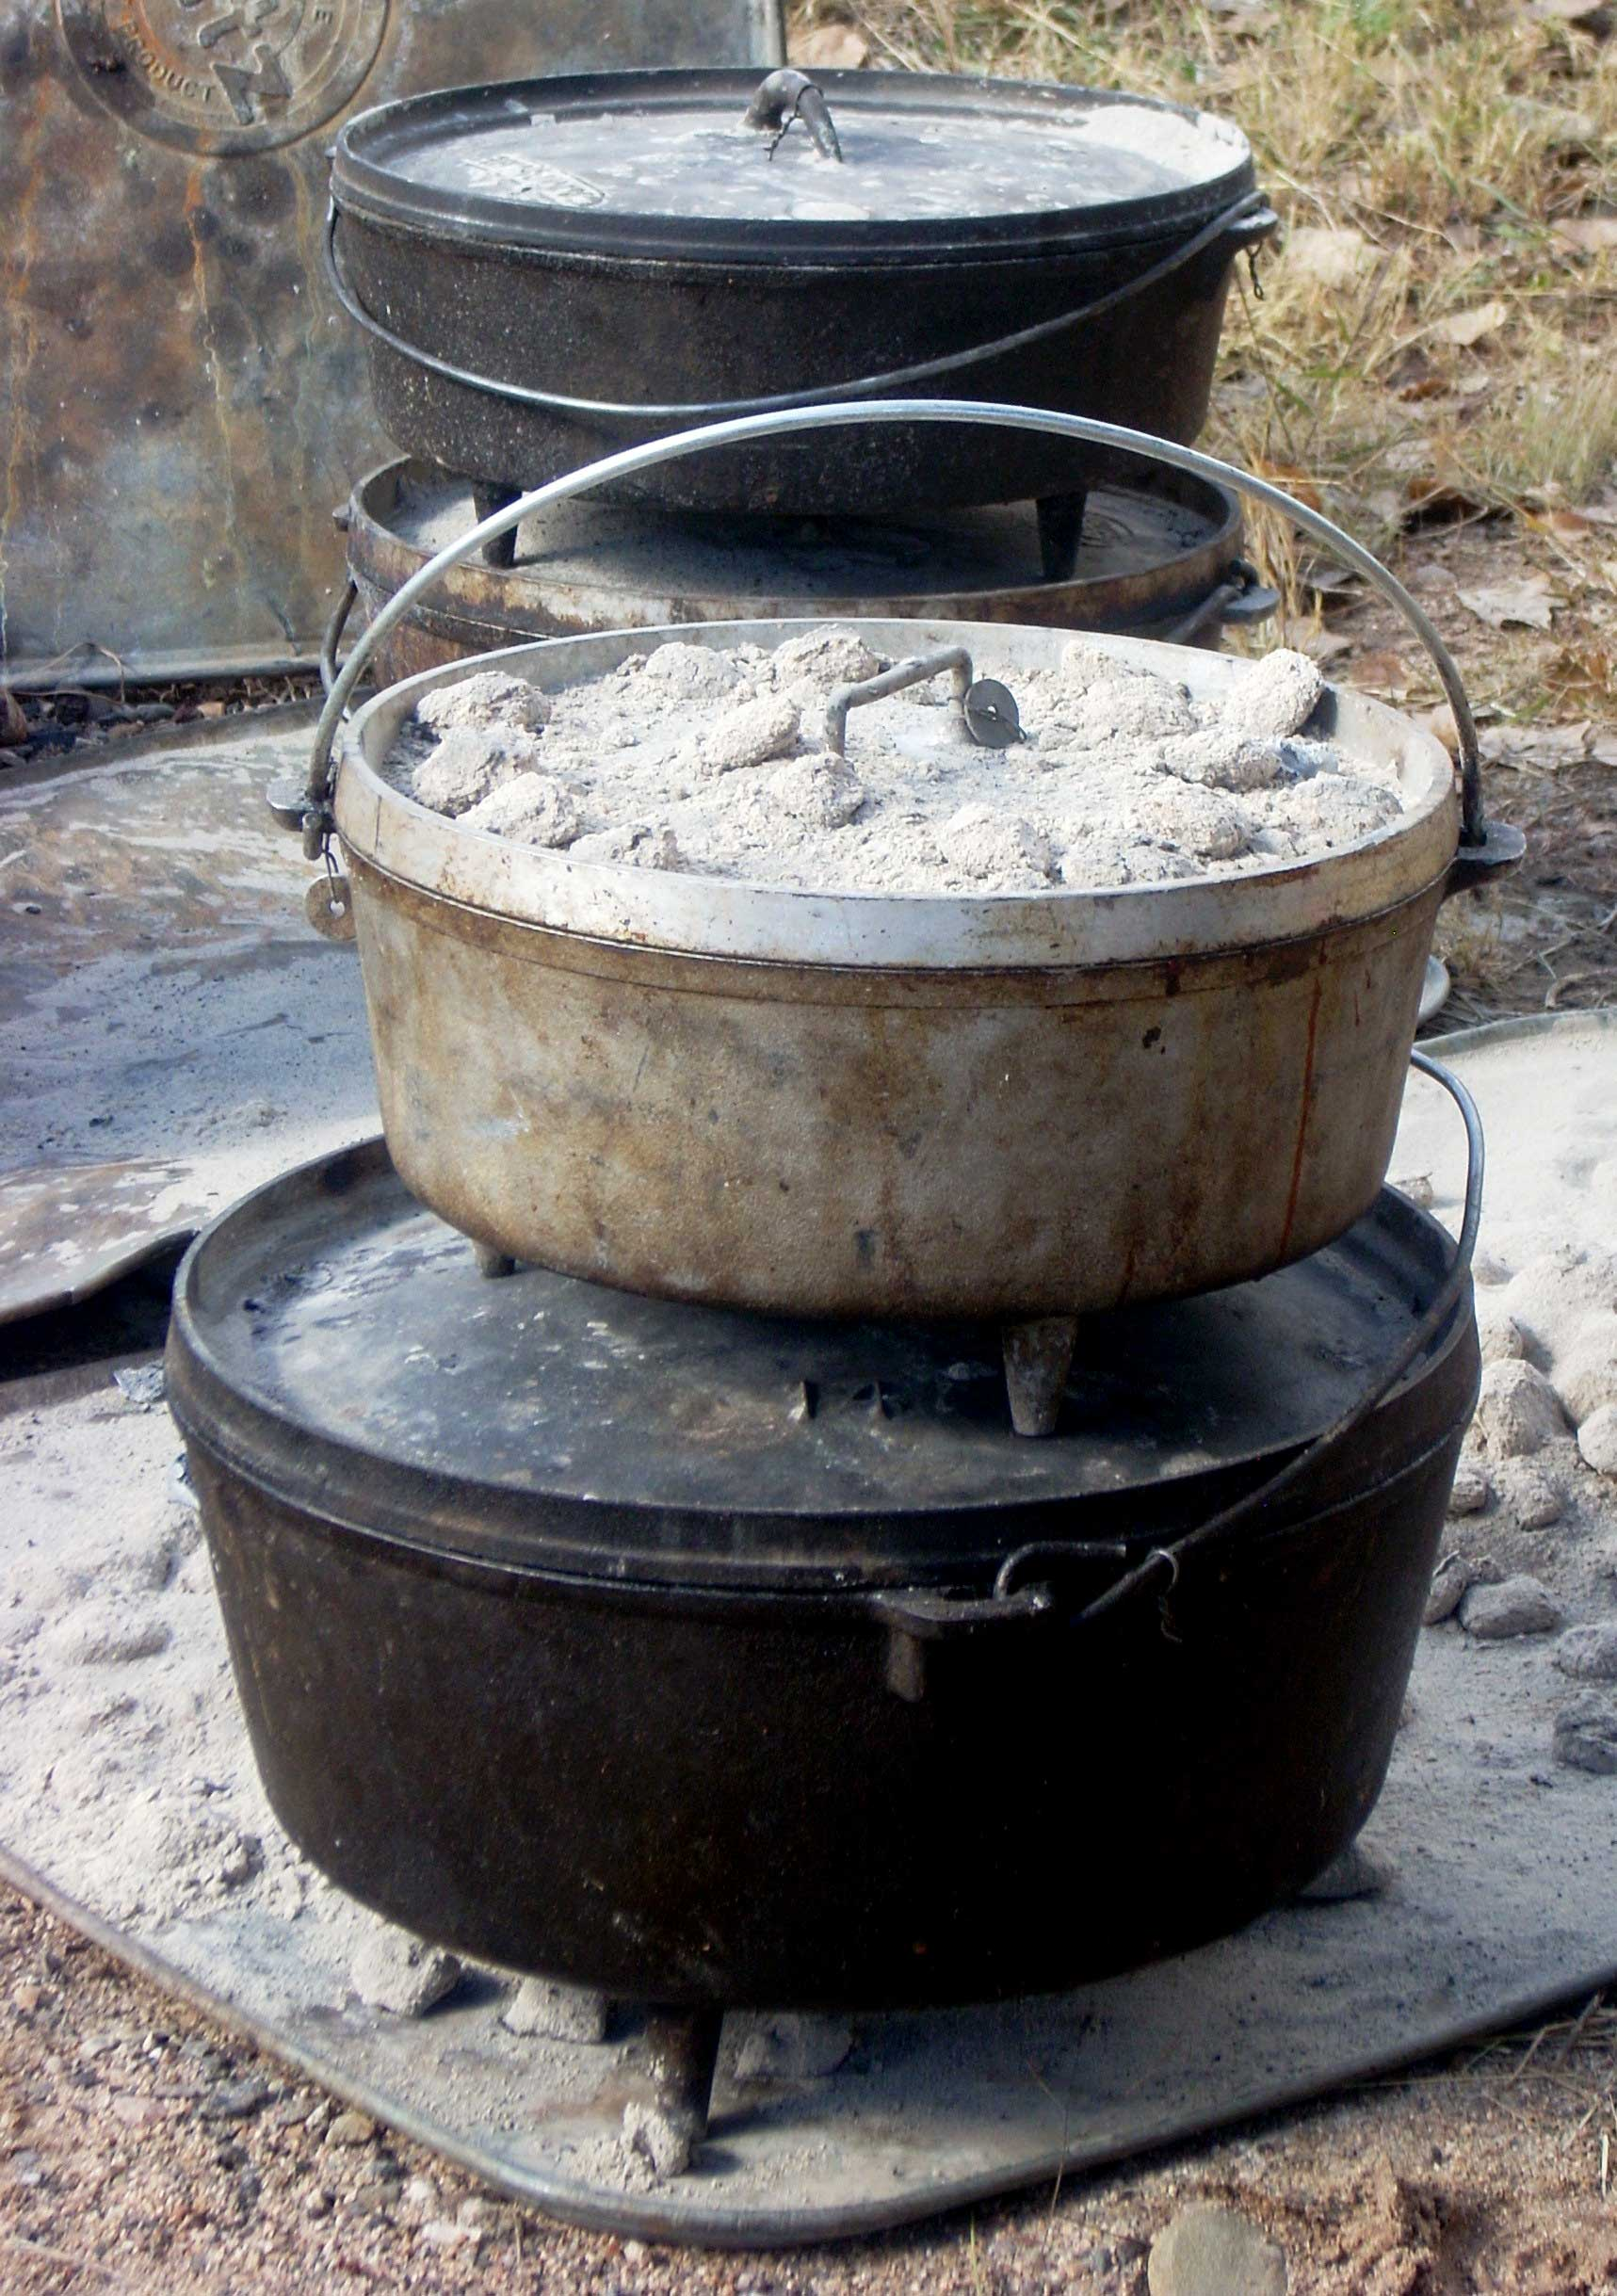 Campfire Dutch ovens showing ashes on top of lid